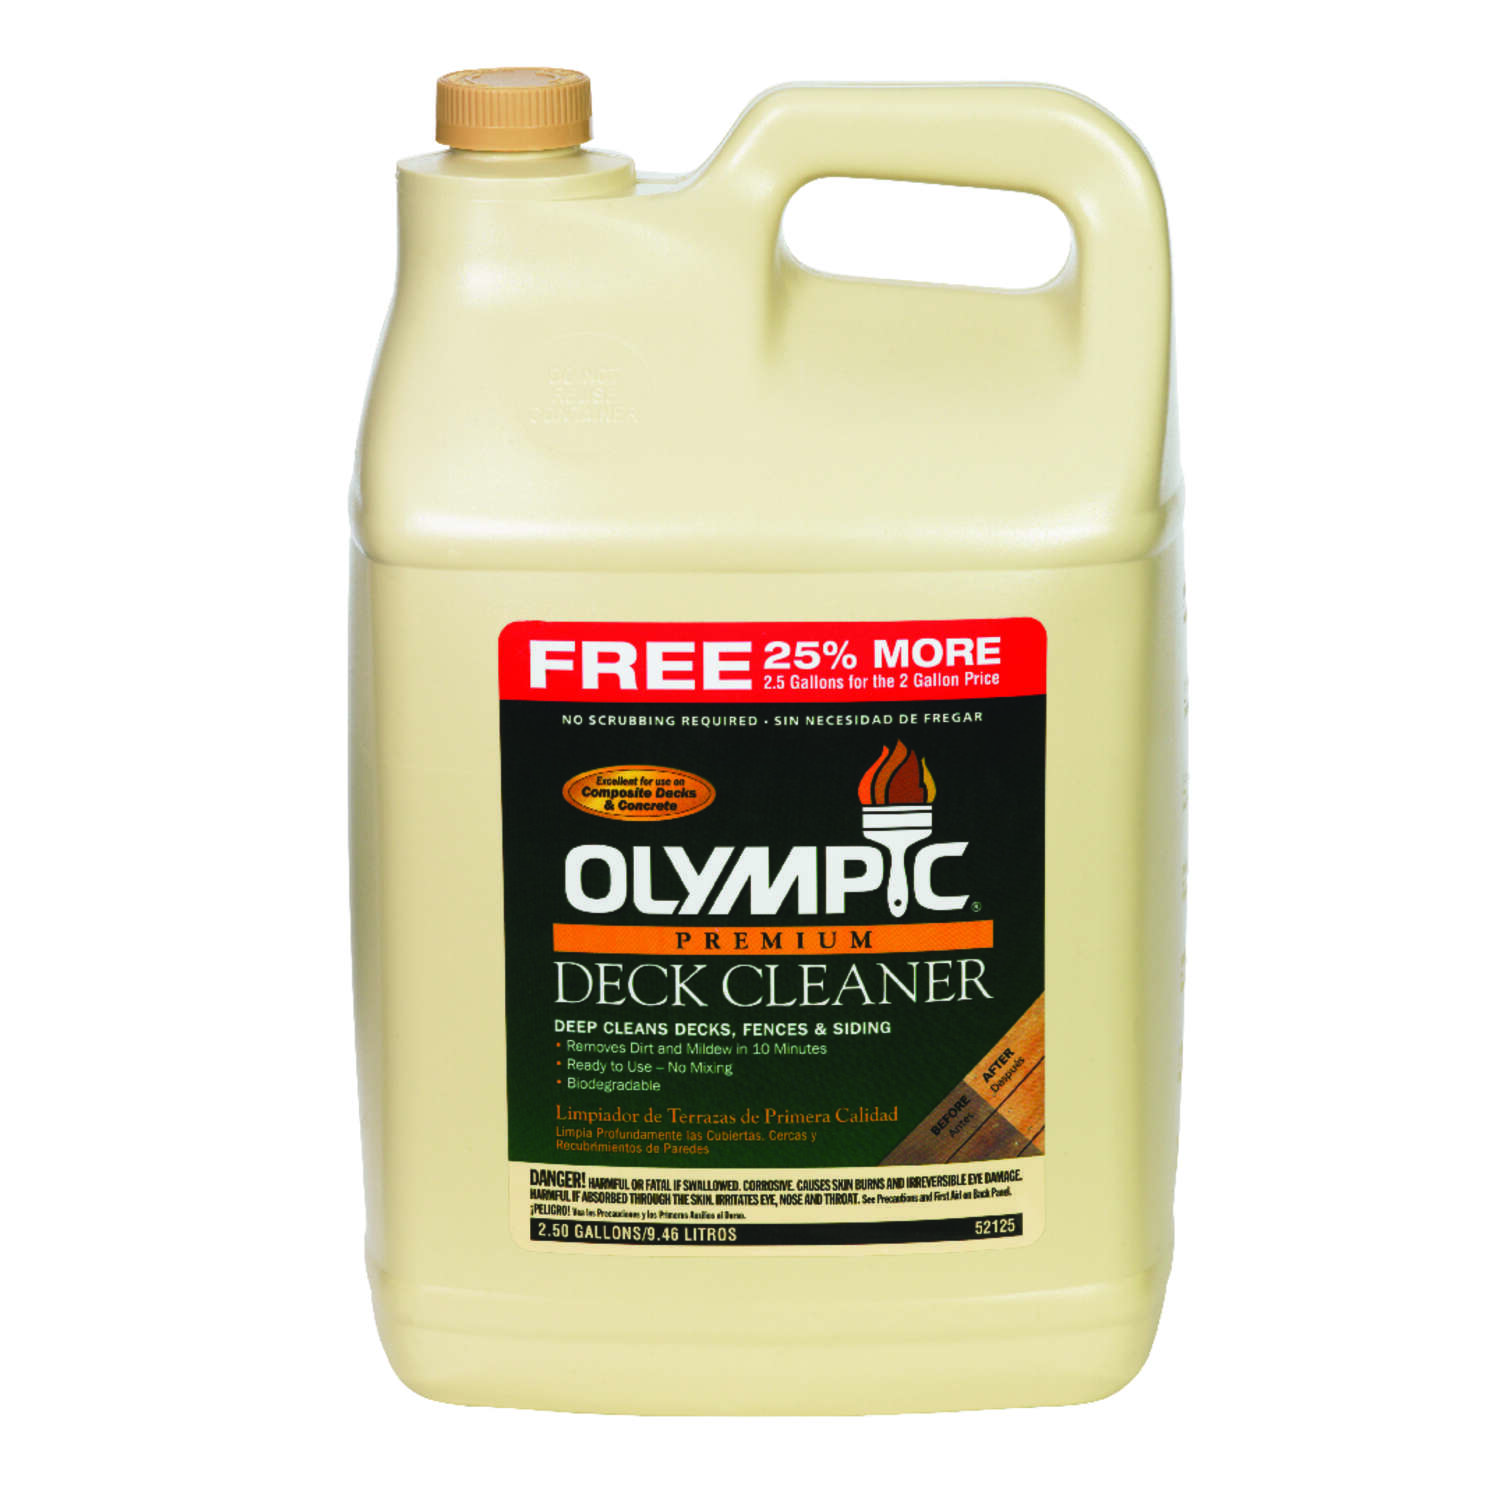 Olympic 2.5 gal. Deck Cleaner - Ace Hardware